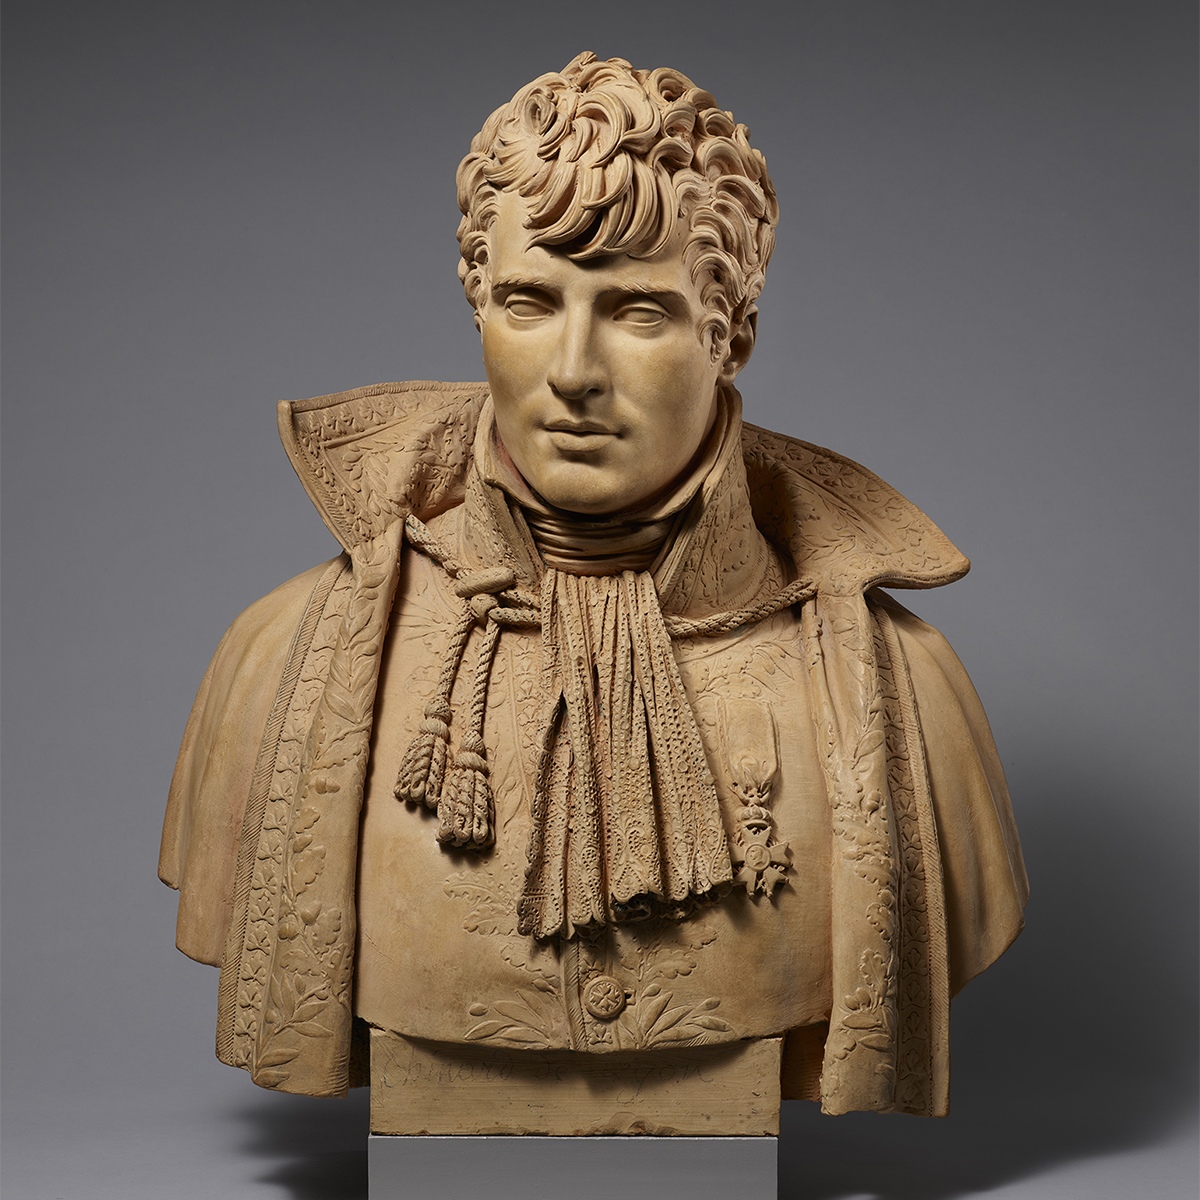 Terracotta bust of a man. He wears a high collared and detailed cloak, which has rope and tassels tied together around his neck